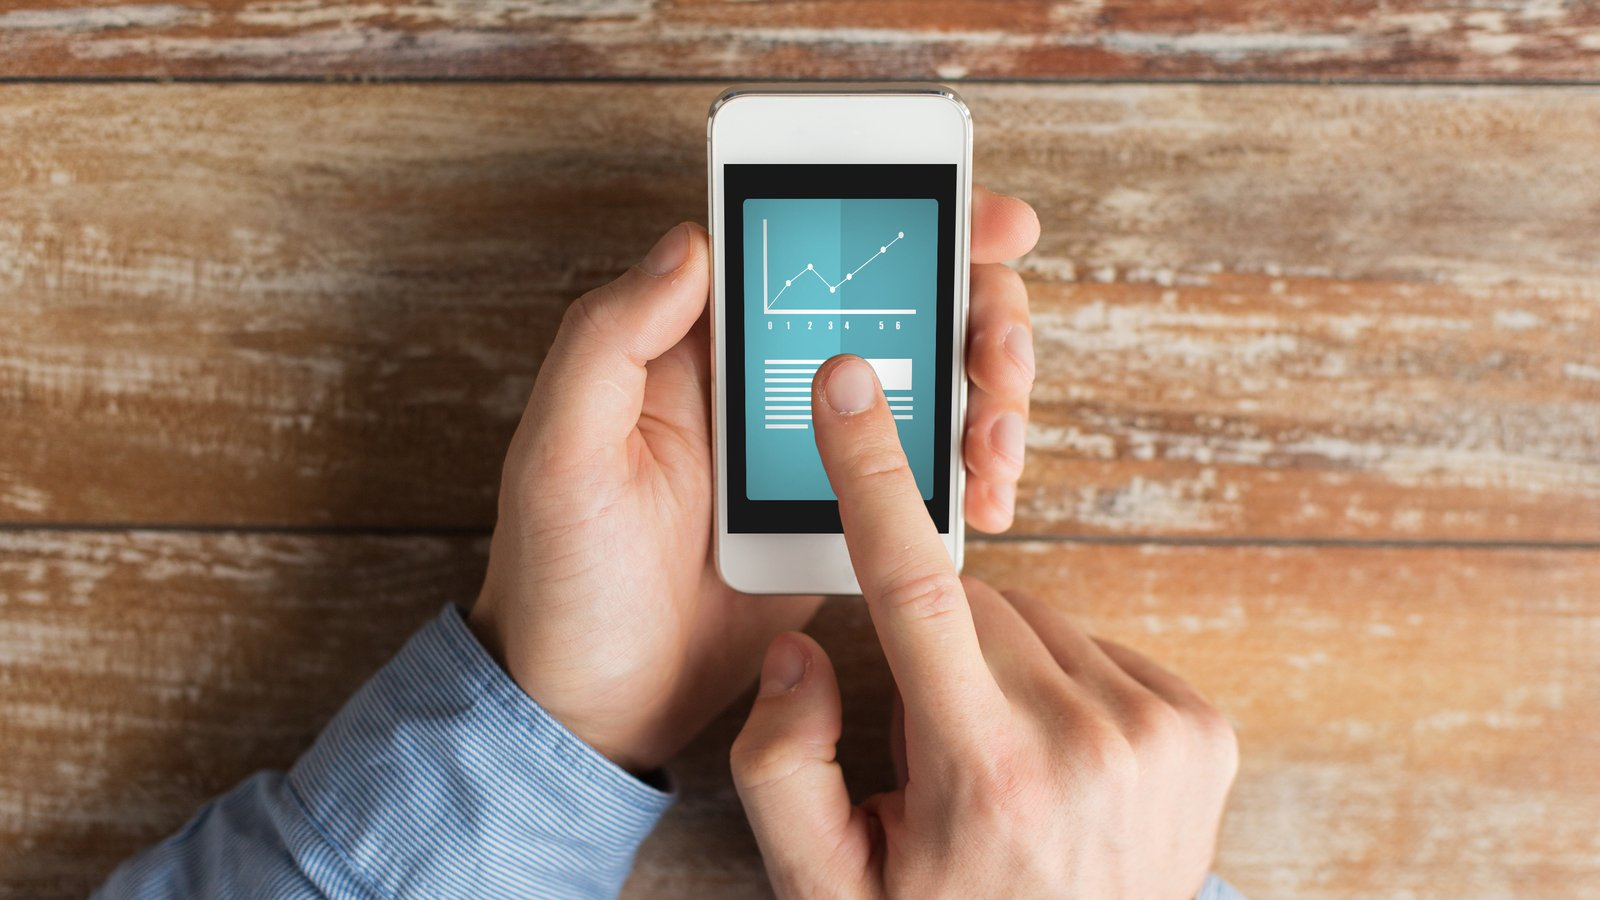 close up of male hands holding smartphone and pointing finger to graph feature